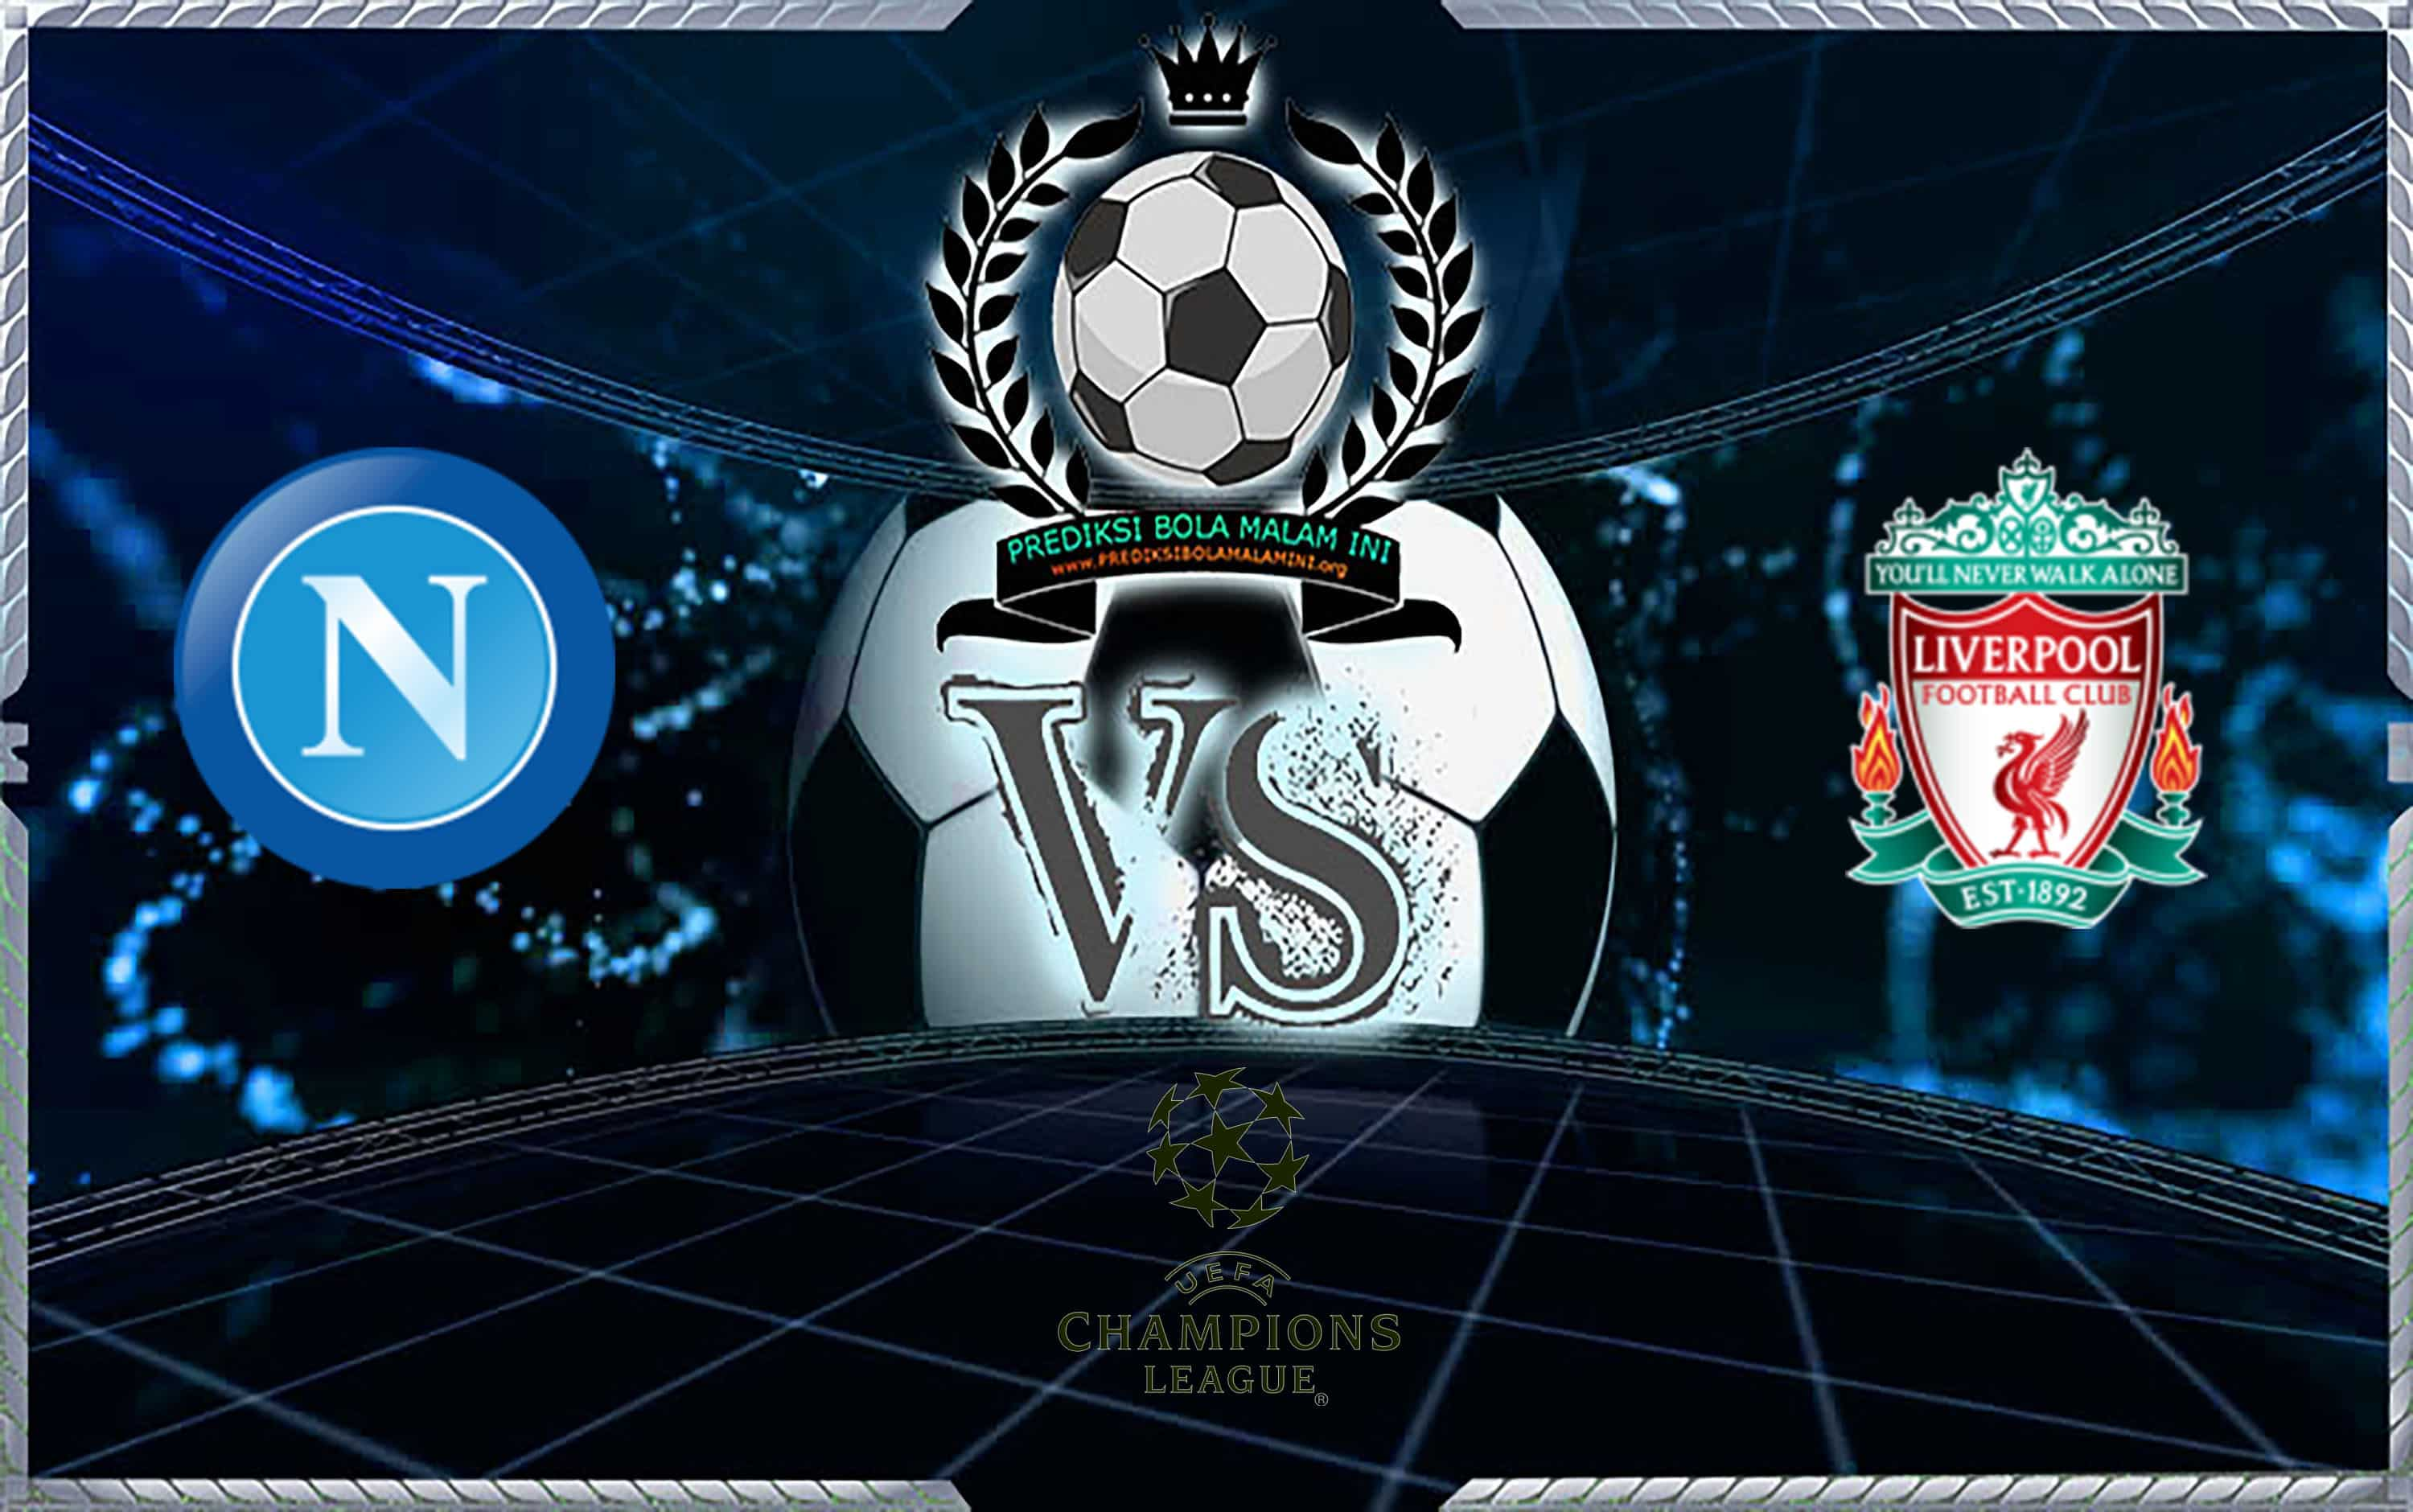 Prediksi Skor Napoli vs Liverpool 18 September 2019